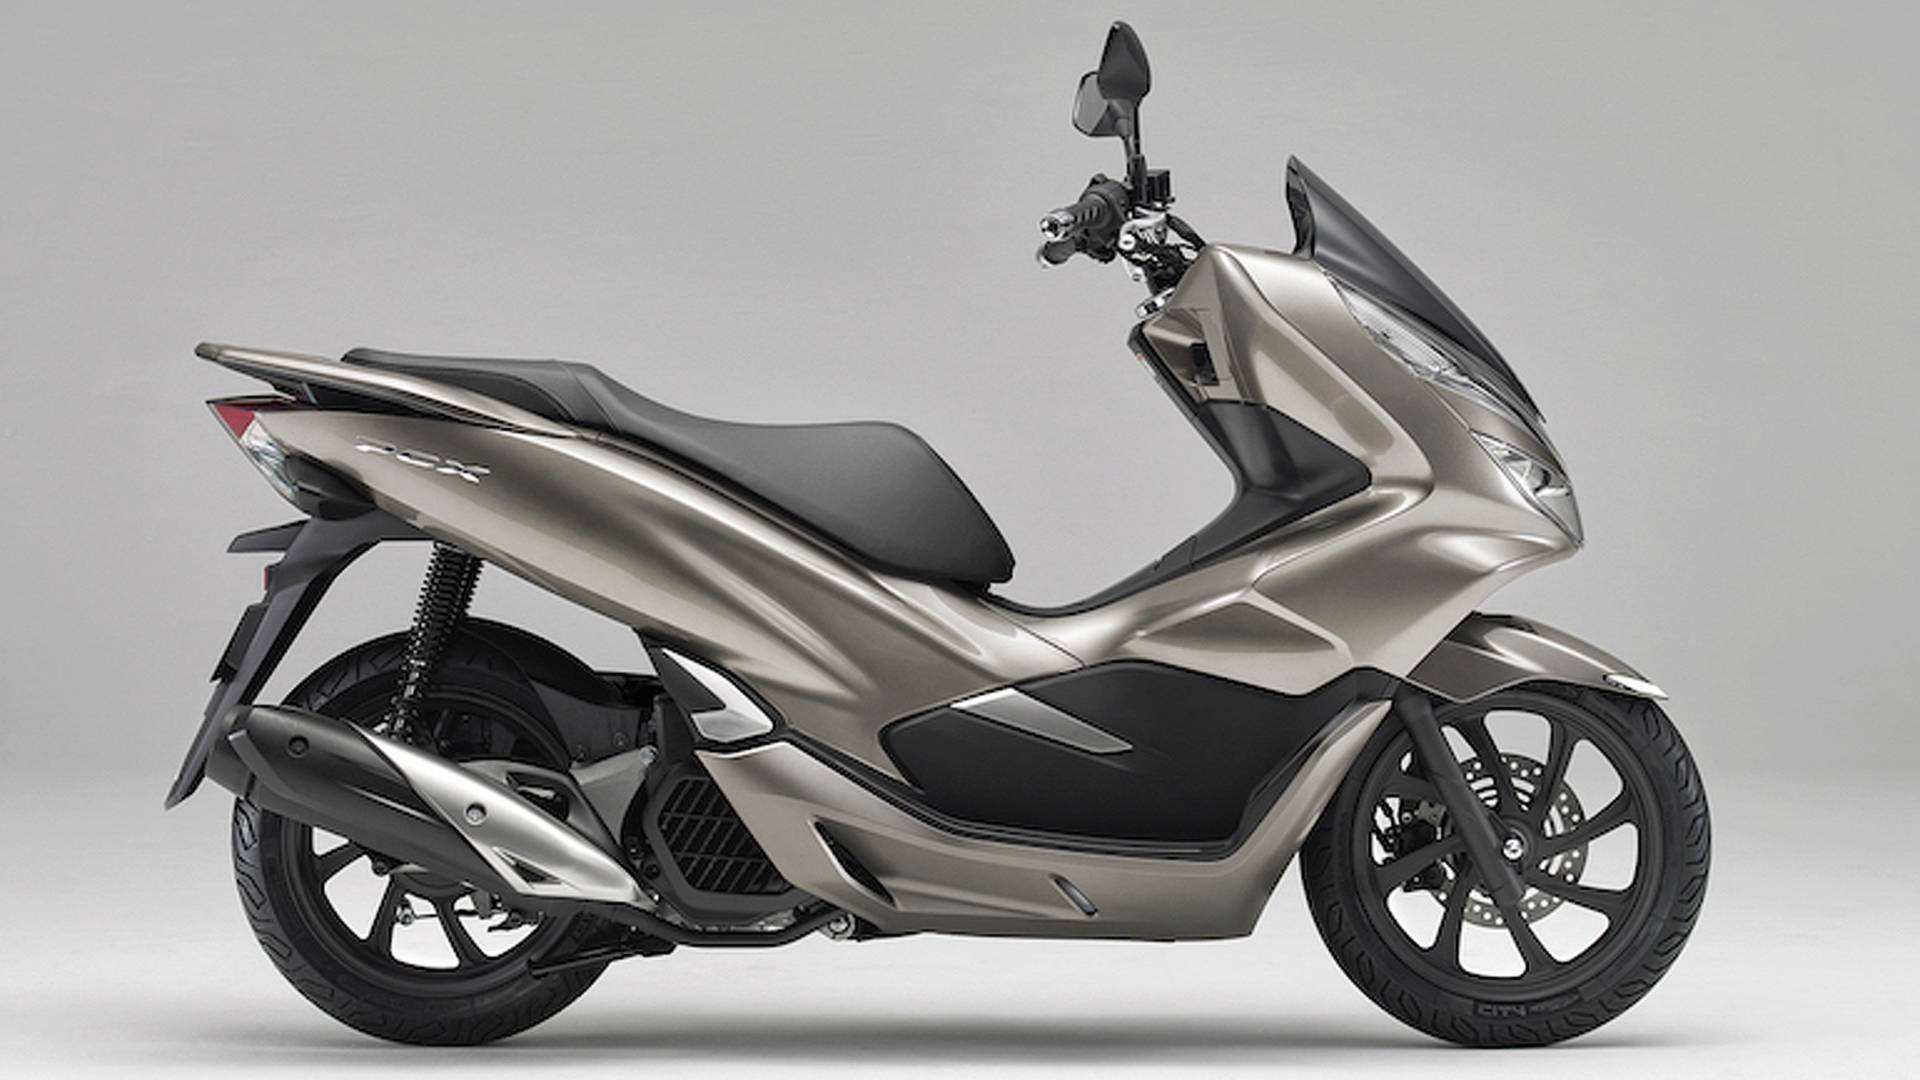 34 Concept of New 2019 Honda Pcx150 Redesign Images for New 2019 Honda Pcx150 Redesign